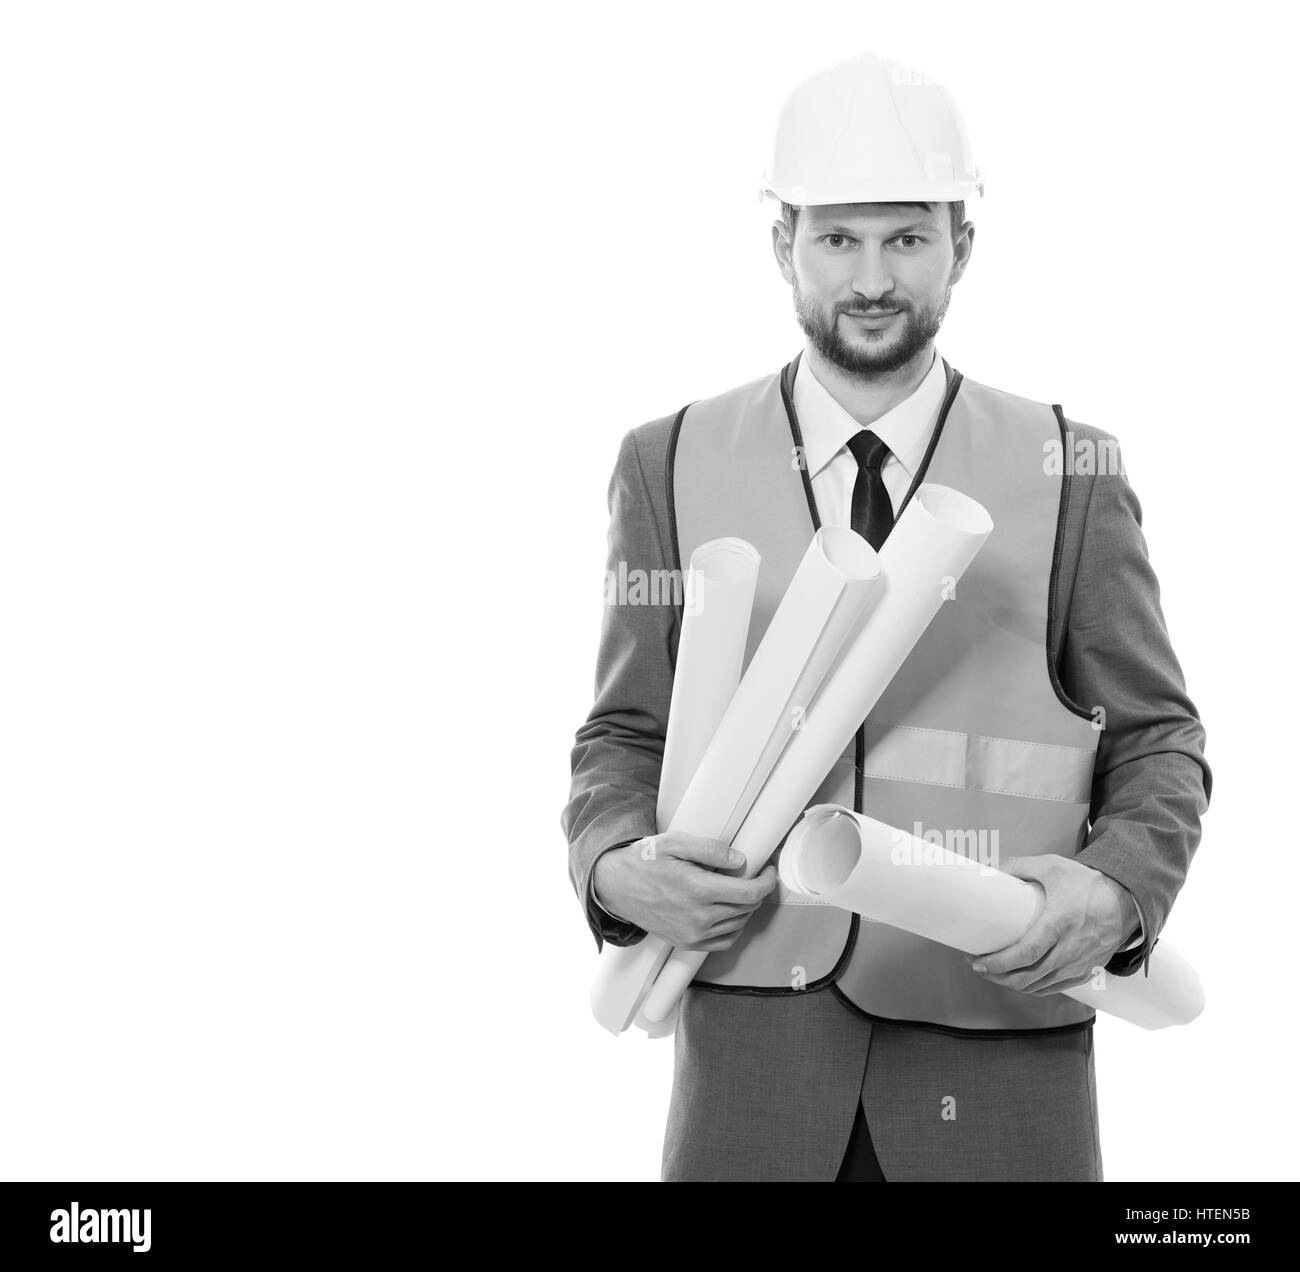 Developing business. Vertical studio portrait of a cheerful male engineer in a hardhat and safety vest posing on - Stock Image